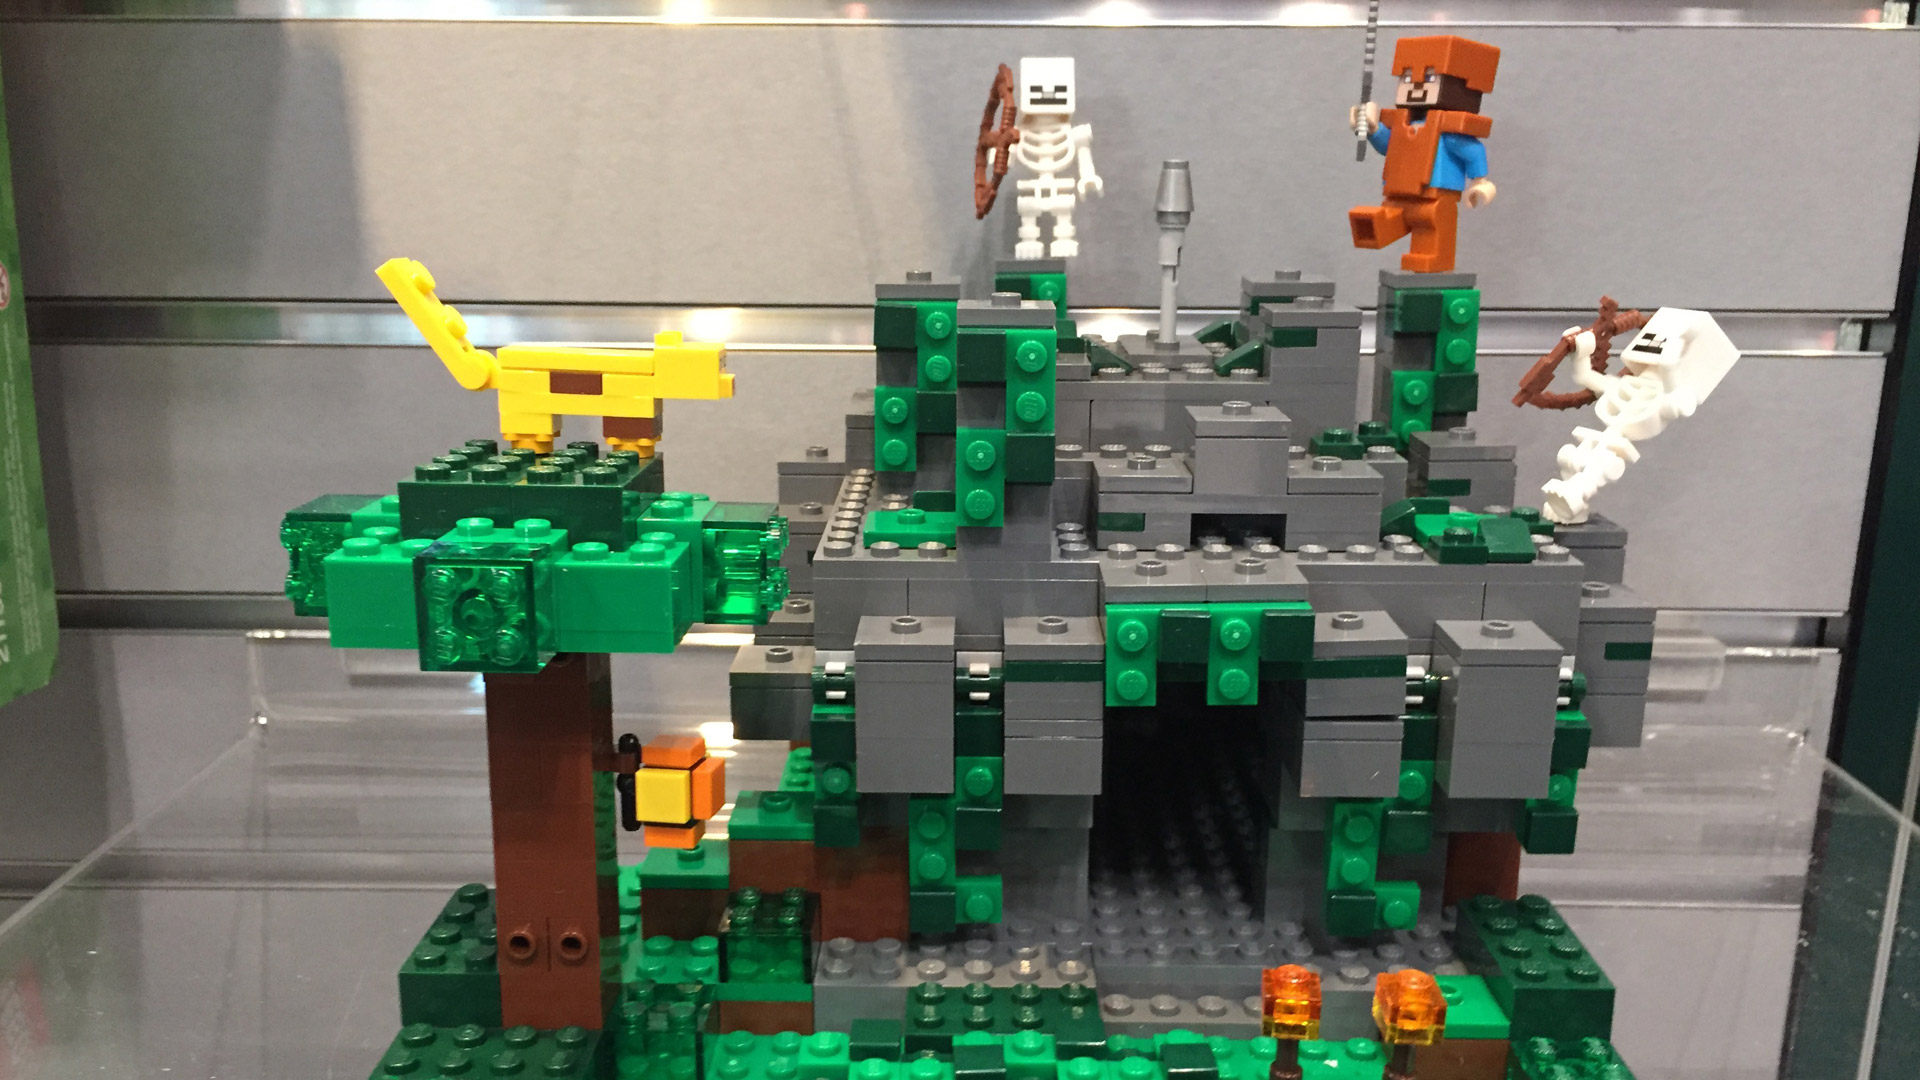 LEGO Minecraft Set 21132 The Jungle Temple at Toy Fair 2017